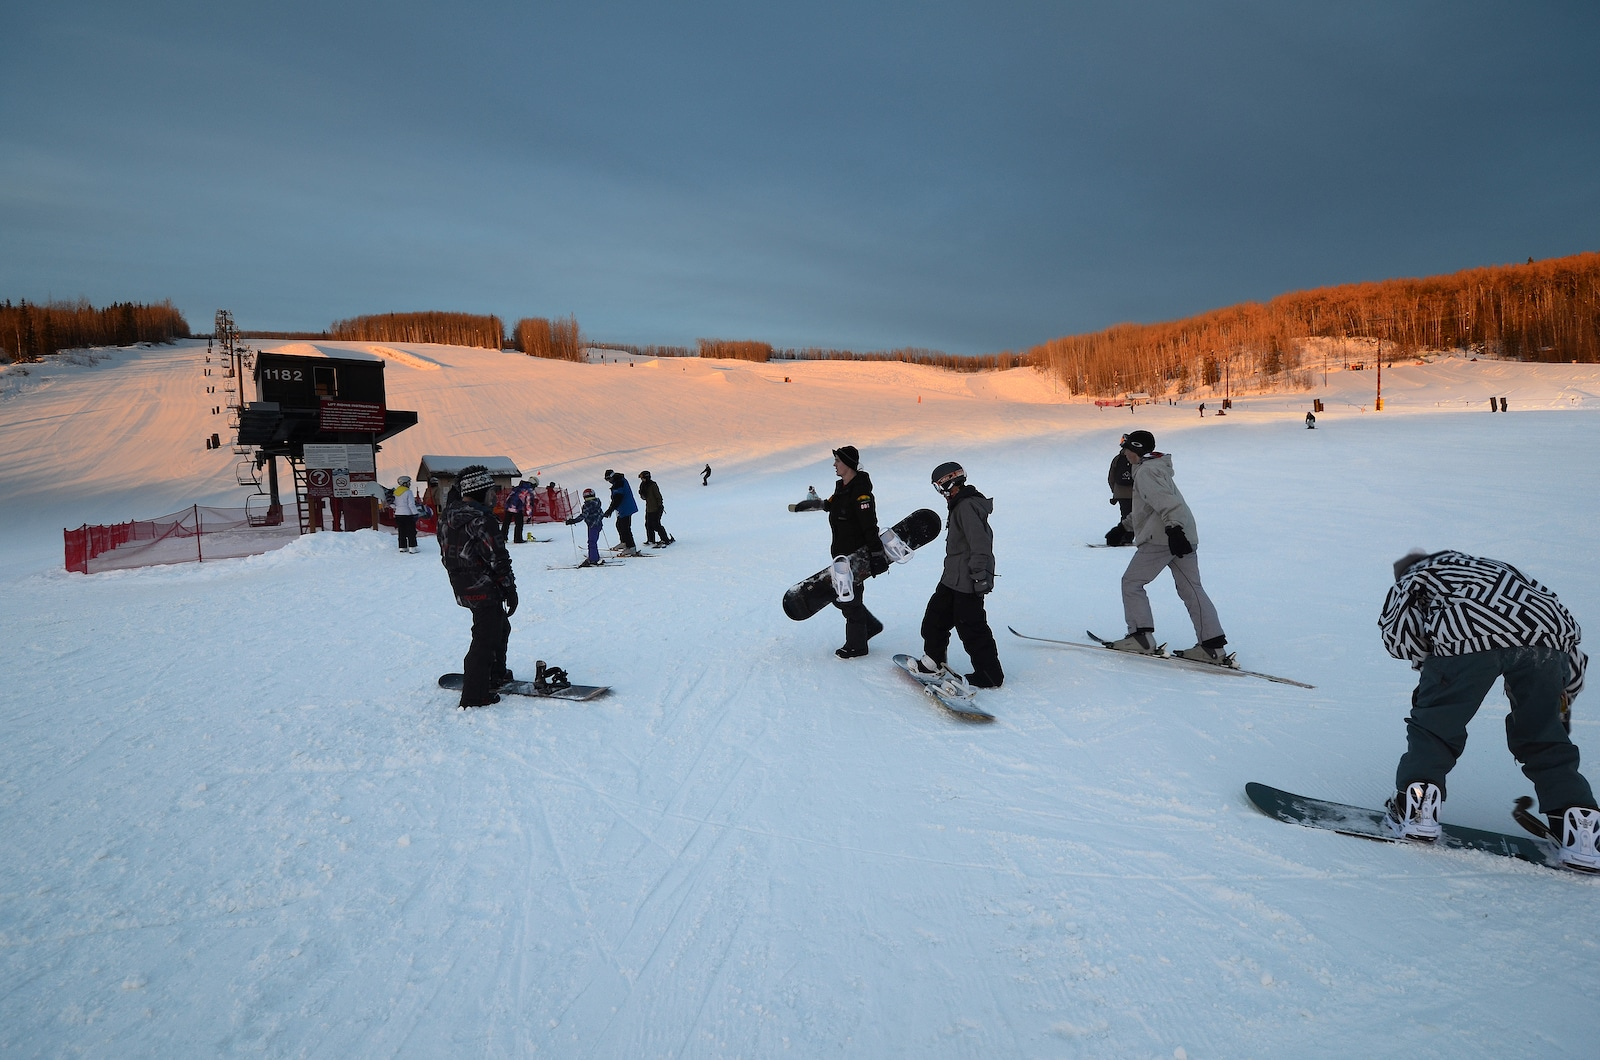 Image of snowboarders at sundown at Birch Hill Ski and Snowboard Area in Alaska